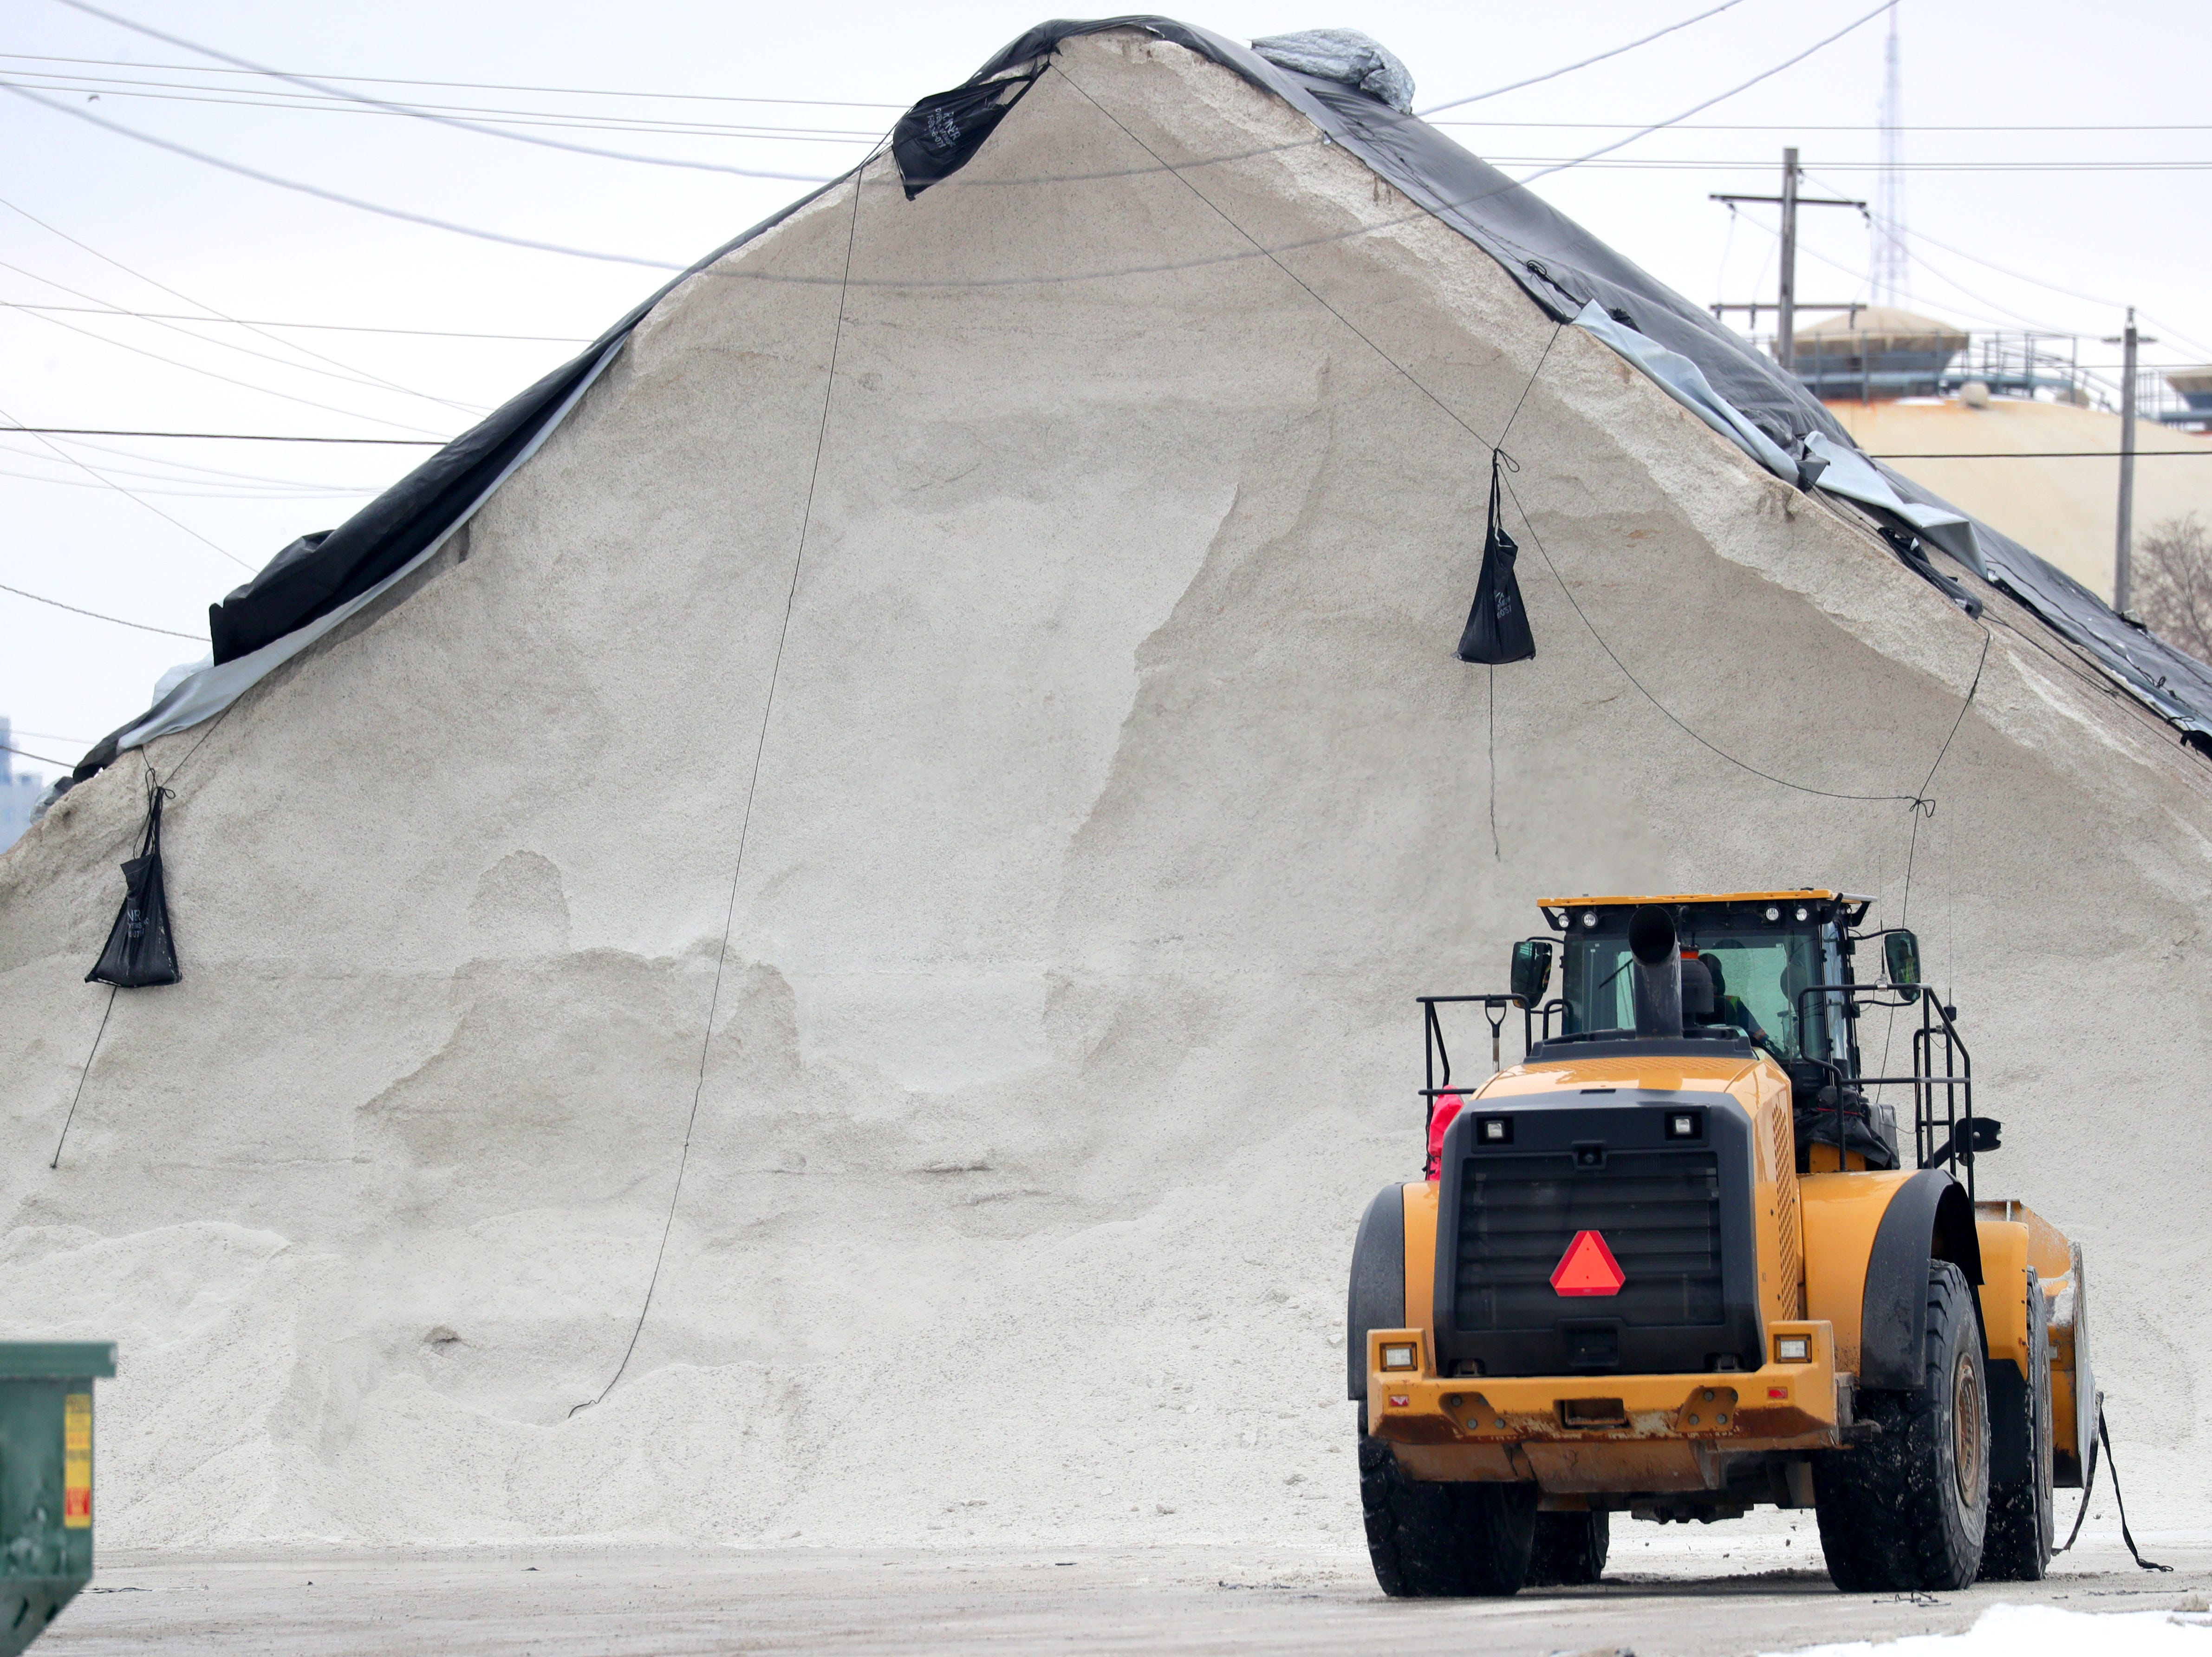 A front loader works near a salt pile at the Port of Milwaukee in Milwaukee on Monday, Feb. 11, 2019 as preparations are underway for snow removal and road treatment due to the upcoming snow in the forecast. The National Weather Service has issued a winter storm warning for central, northern and northeastern Wisconsin from 9 p.m. Monday until 12 a.m. Wednesday. Photo by Mike De Sisti / Milwaukee Journal Sentinel